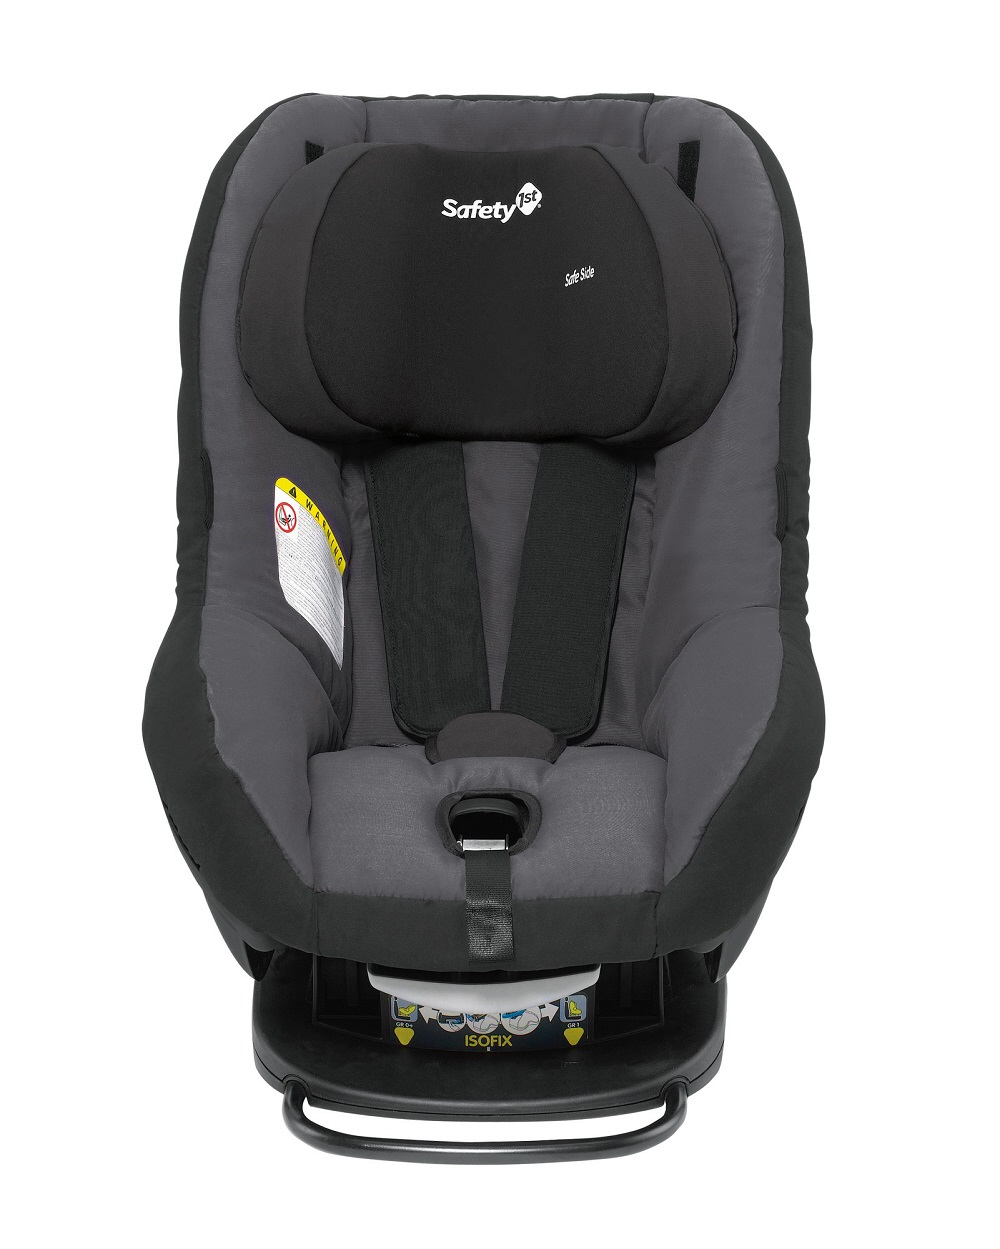 safety 1st child car seat primeofix 2015 black sky buy at kidsroom. Black Bedroom Furniture Sets. Home Design Ideas